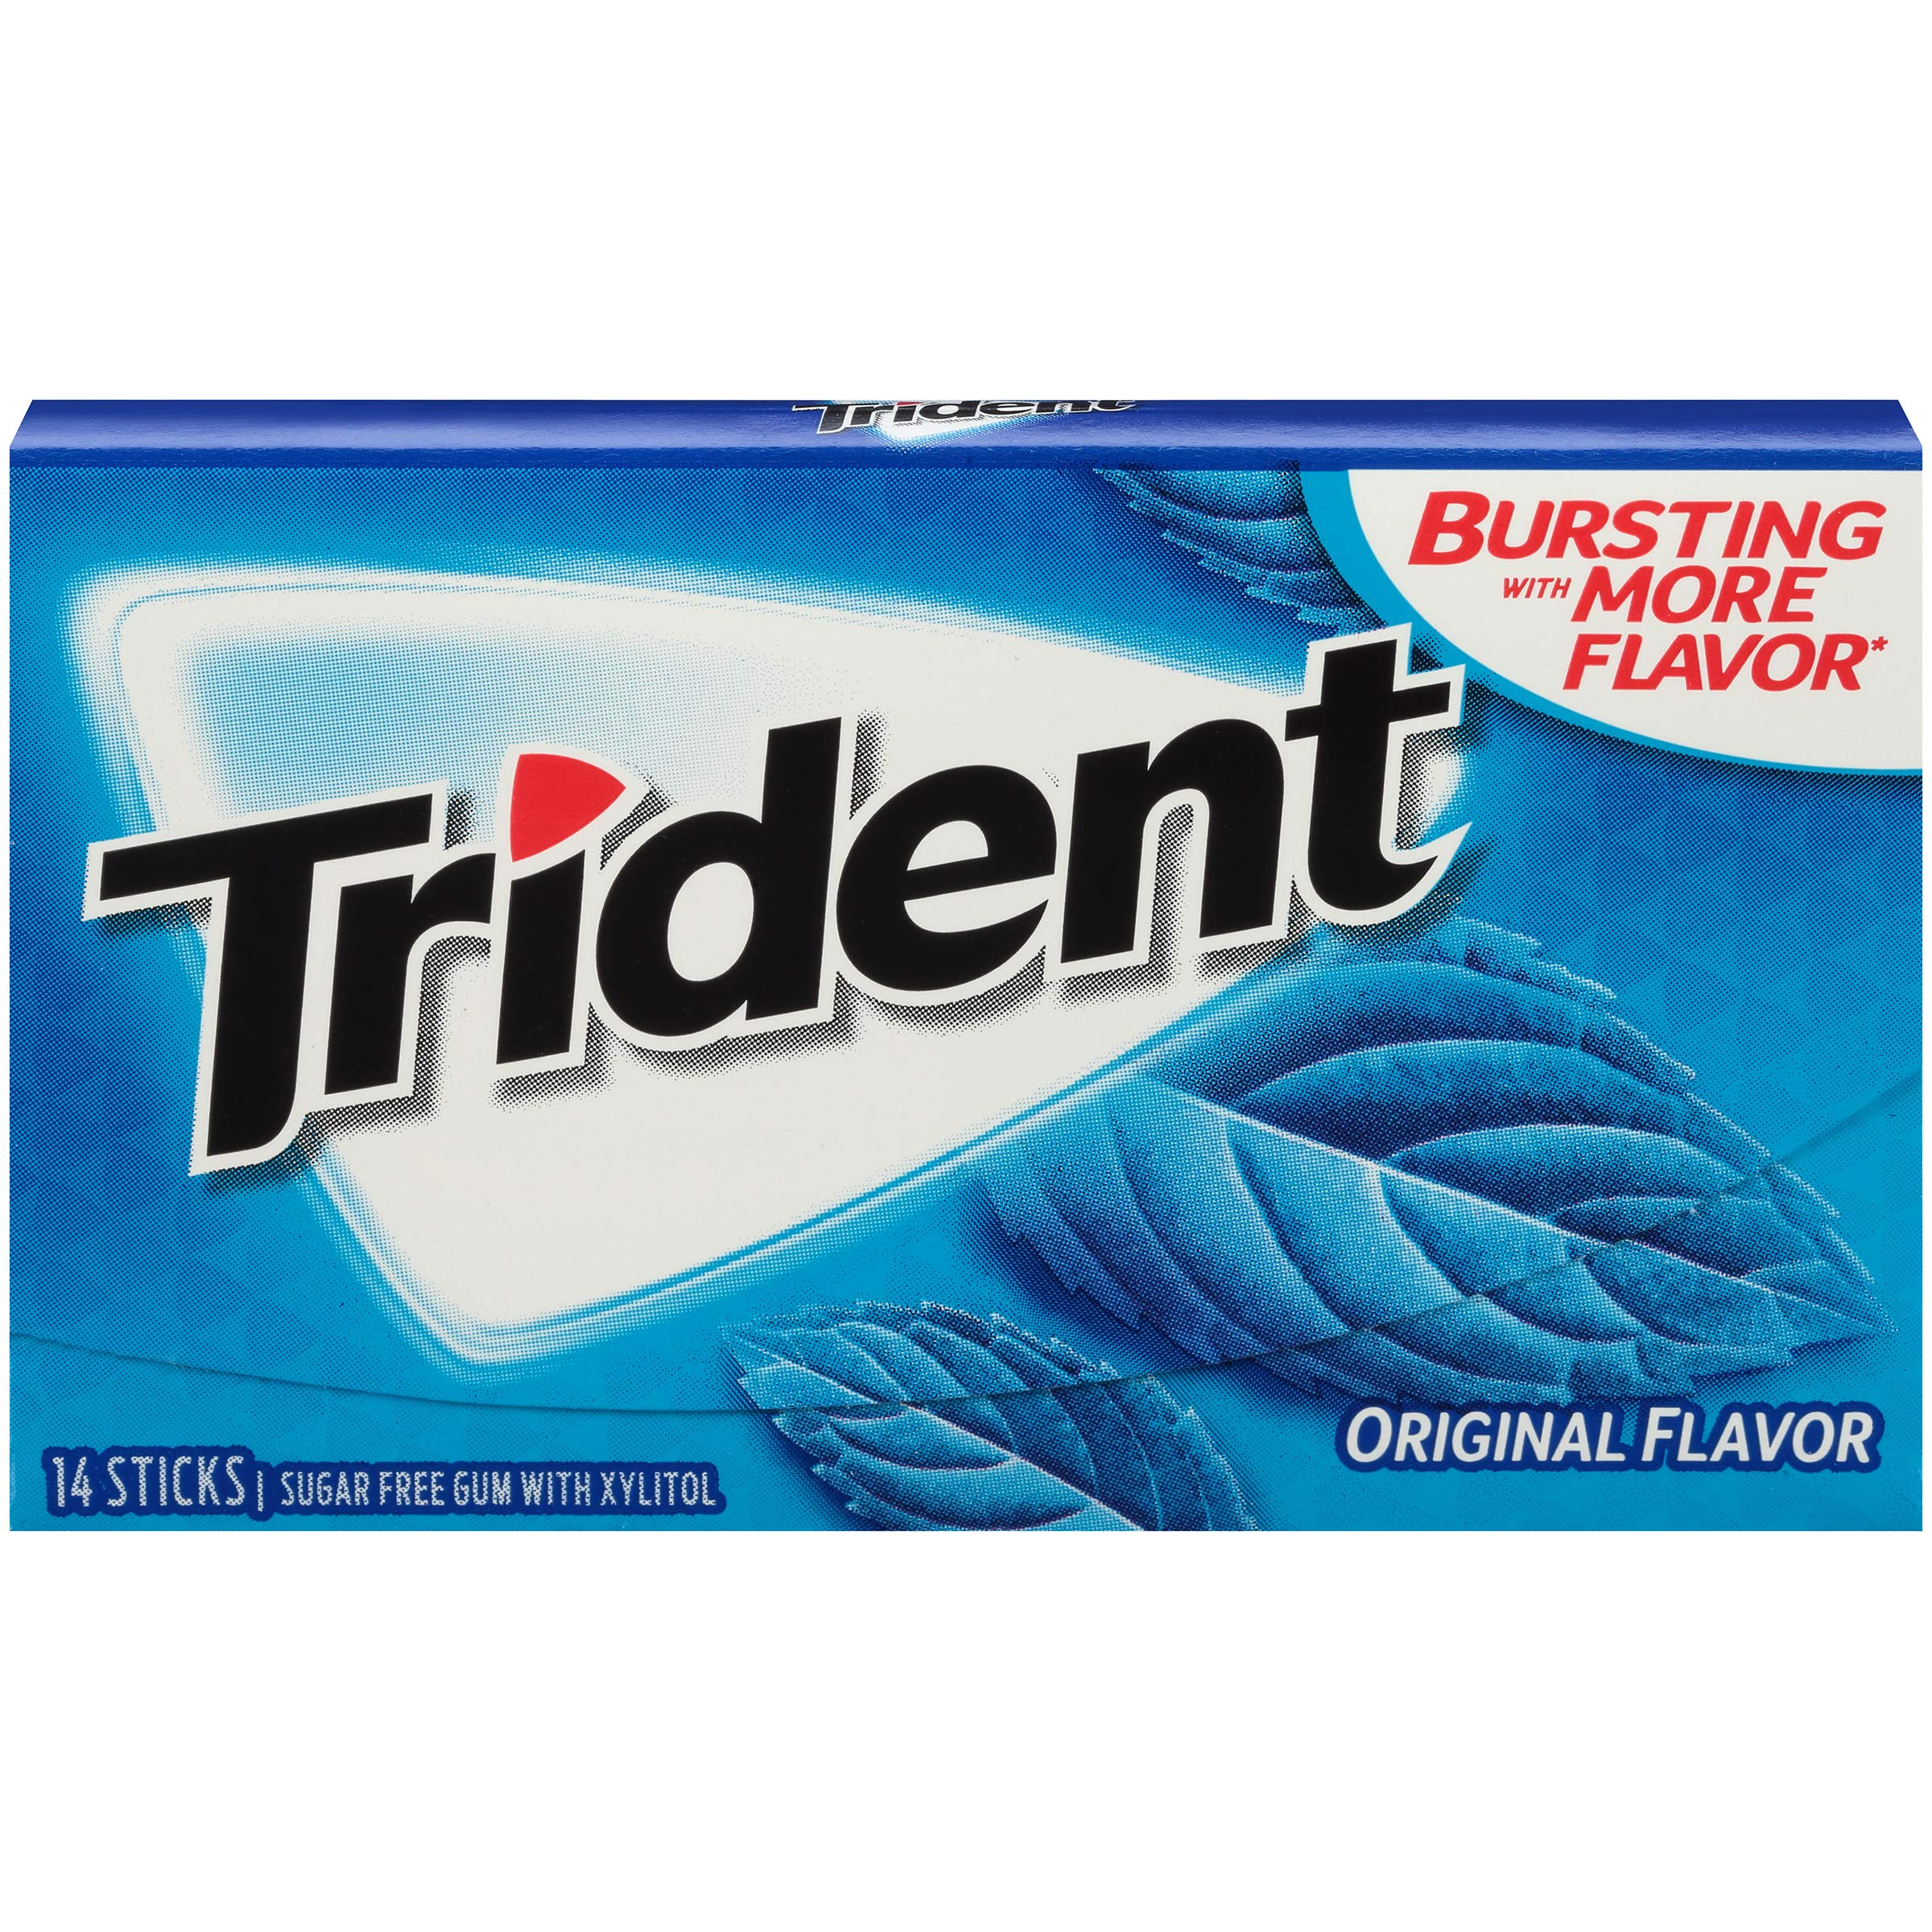 Trident Sugar Free Gum Original, 14 piece pack (24 Packs) by Trident (Image #5)